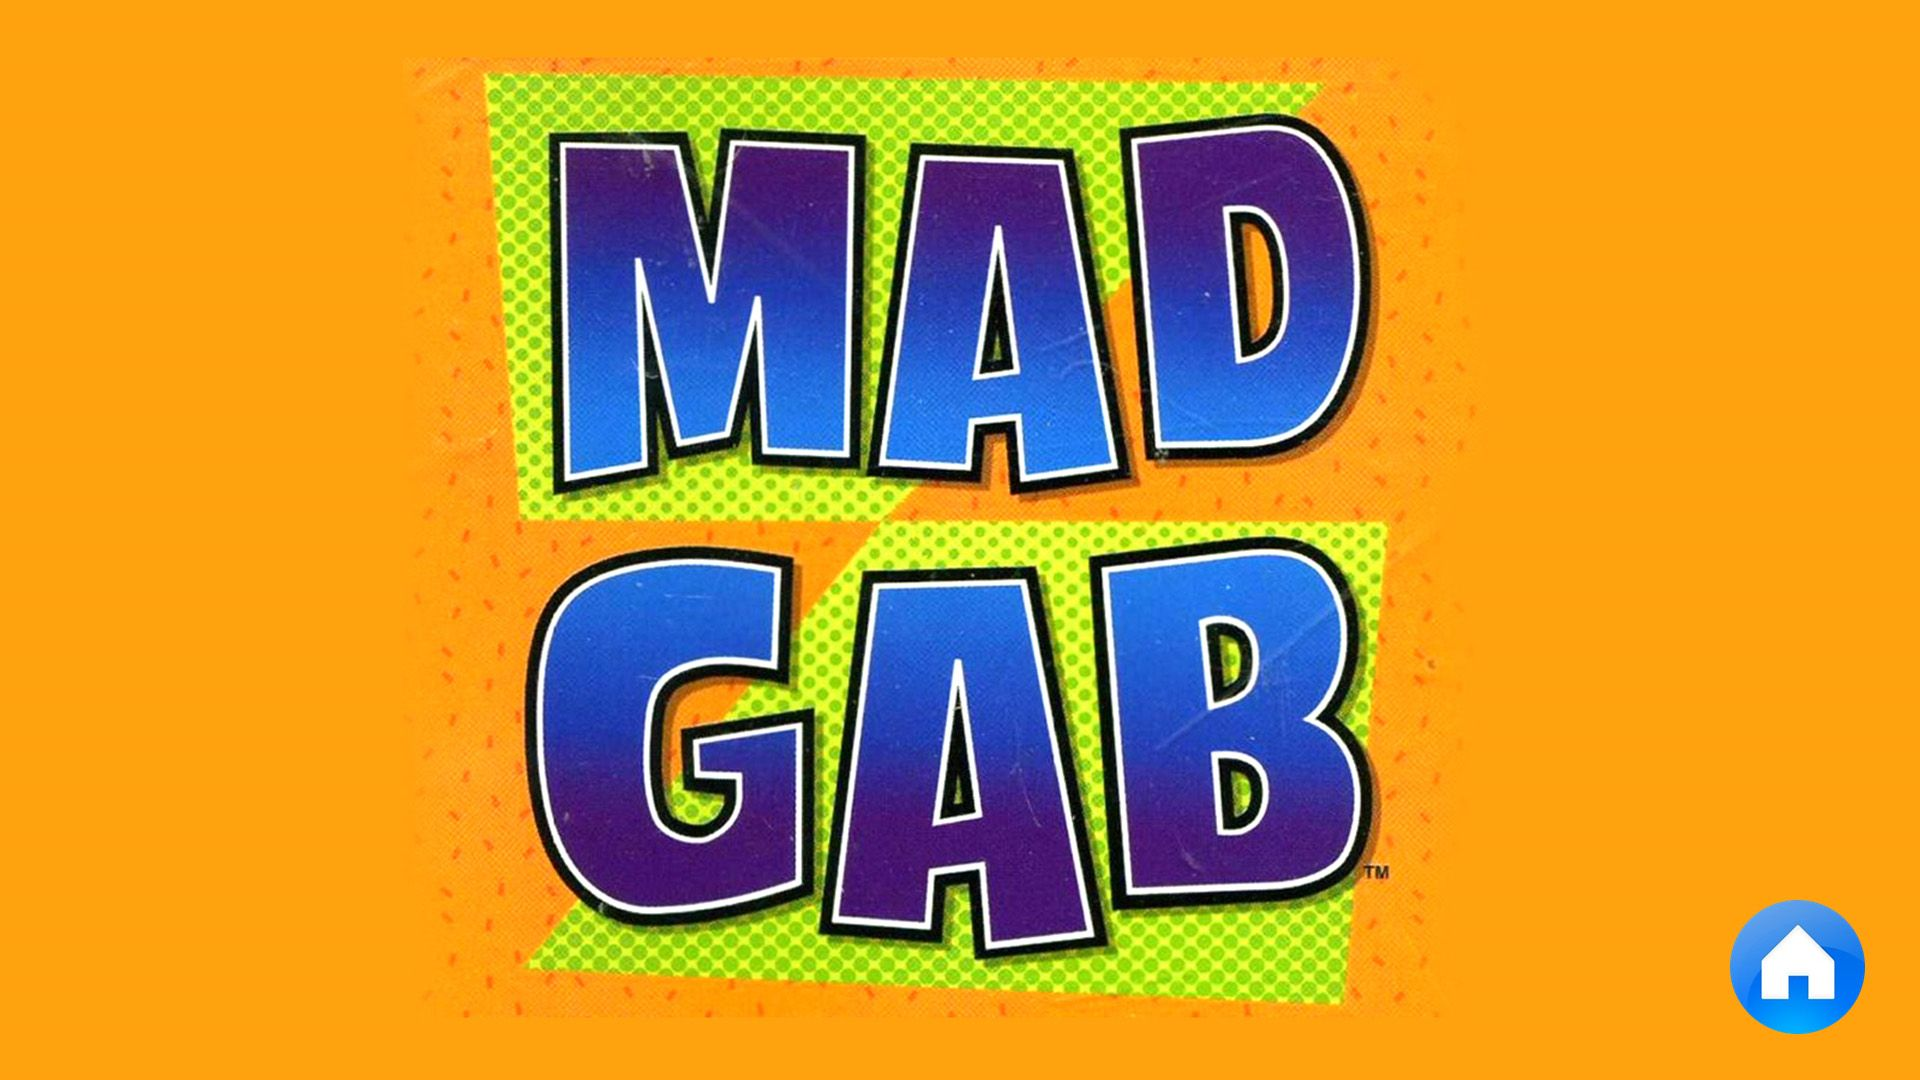 mad gab powerpoint game - youth downloadsyouth downloads | youth, Powerpoint templates